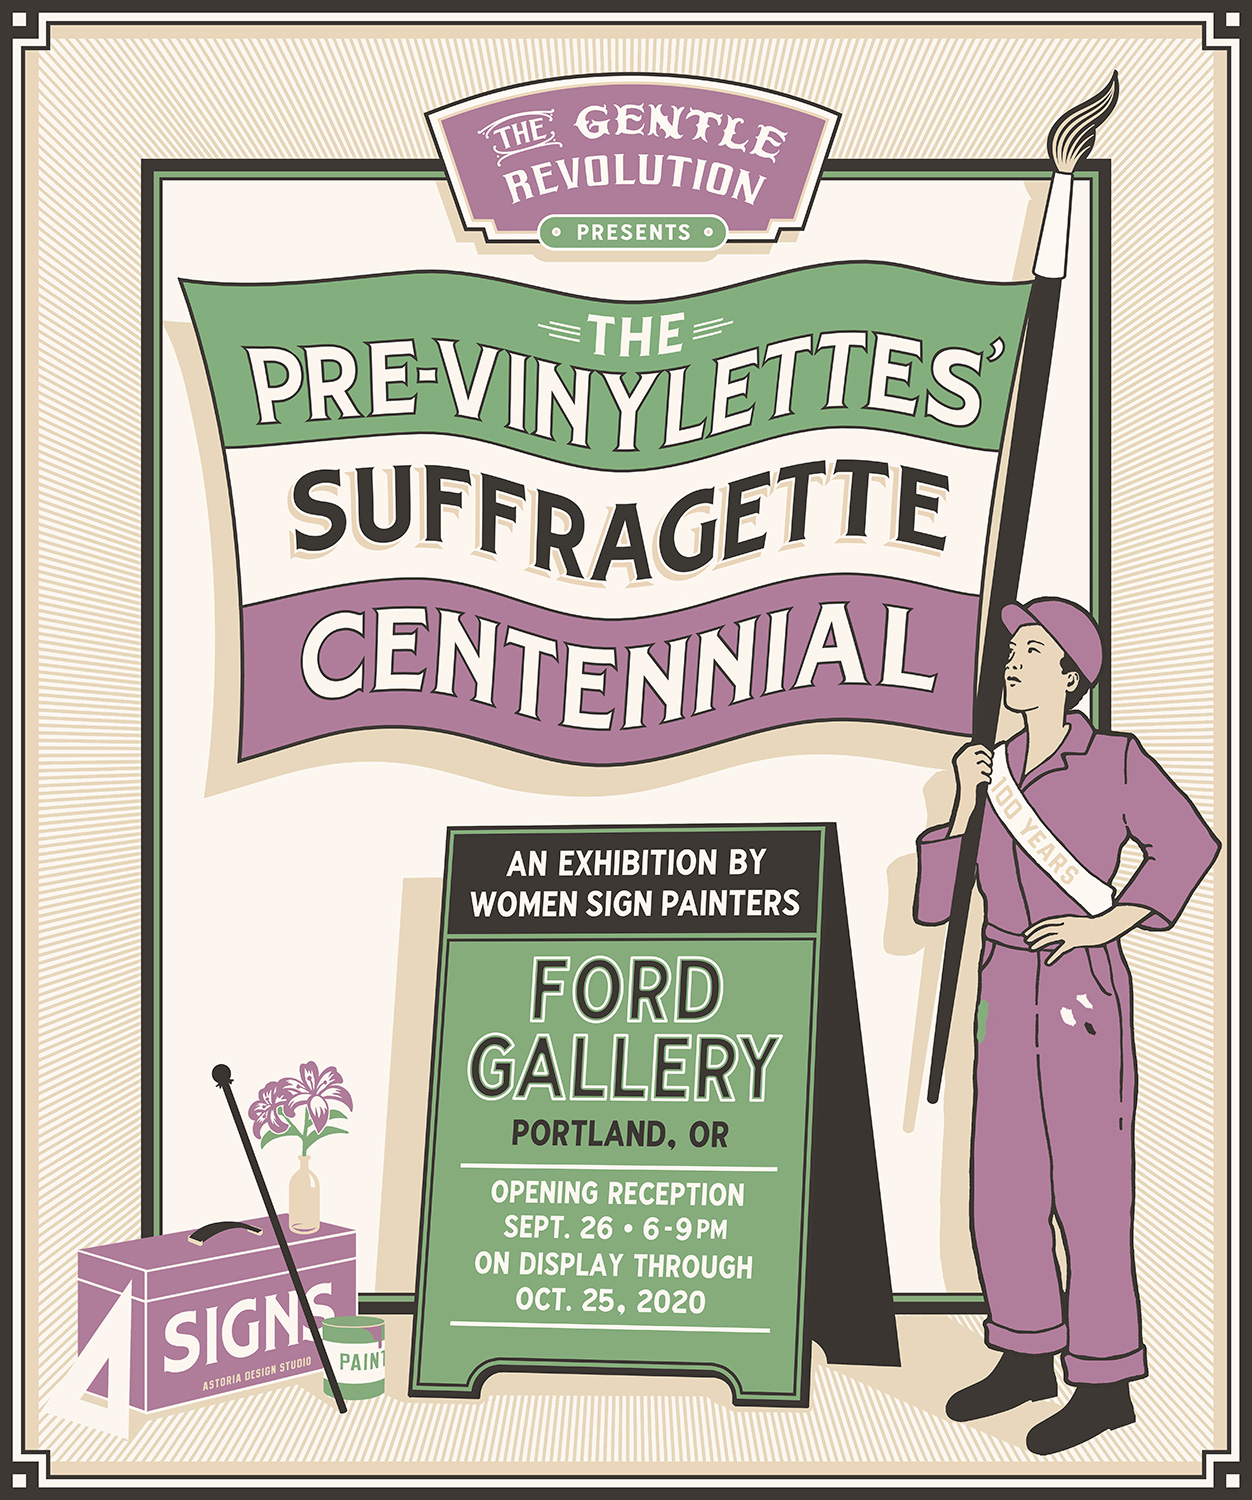 Thumbnail for The Pre-Vinylettes' Suffragette Centennial is On